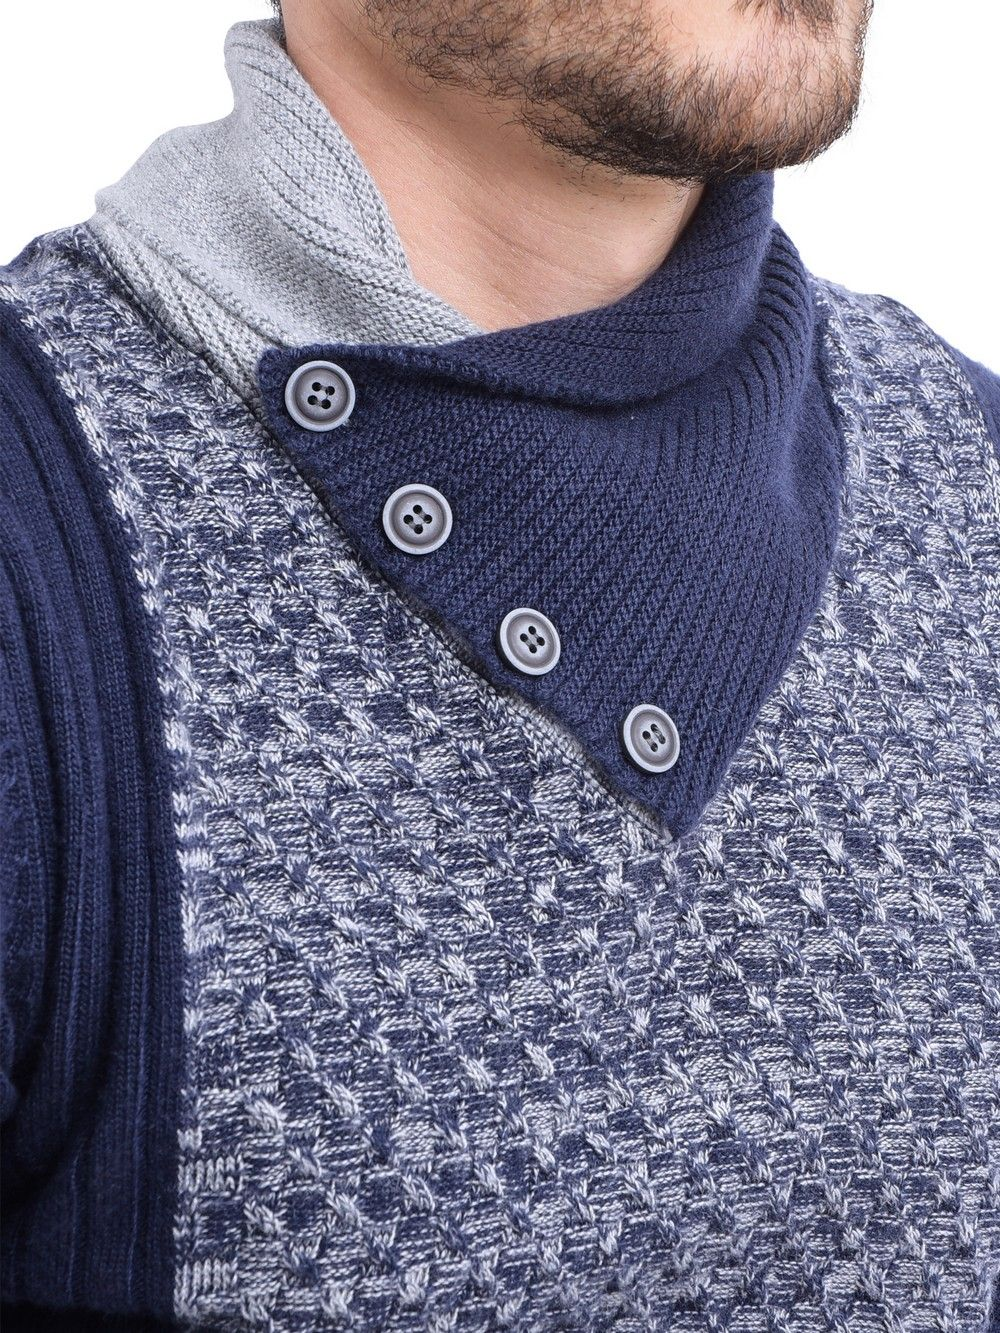 William De Faye Shawl Collar Jacquard Sweater with Butons in Navy